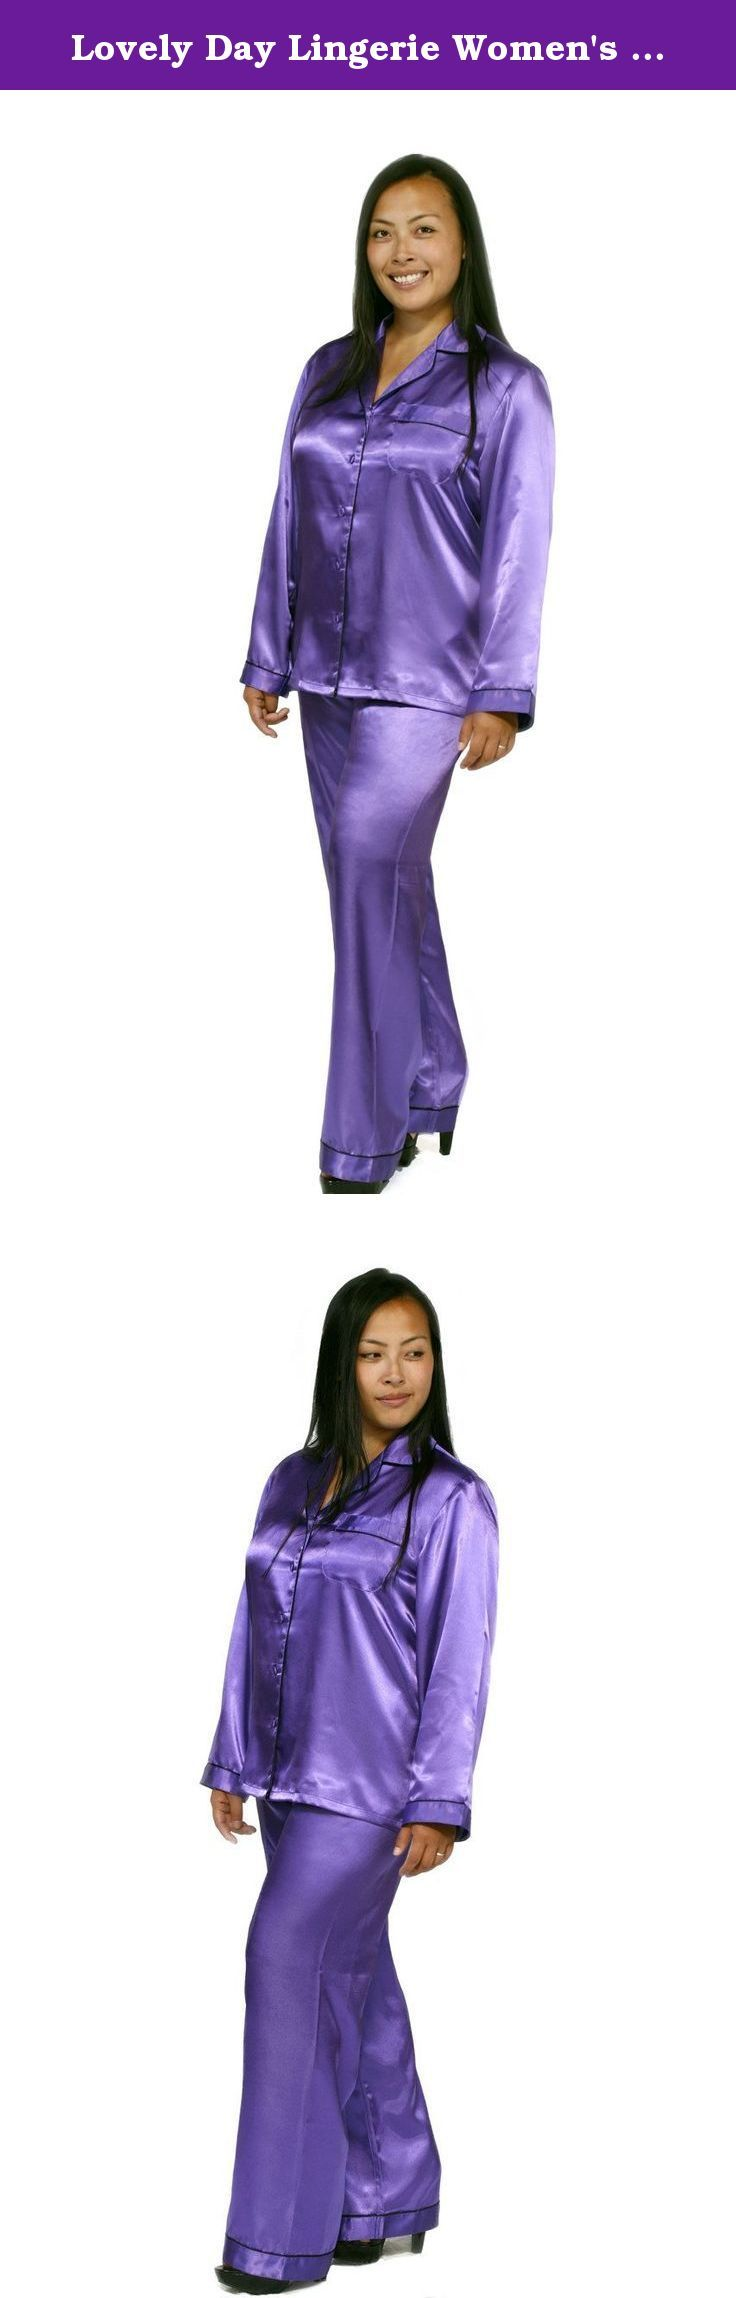 Lovely Day Lingerie Women's Satin Long Pant Pajama Set Purple Medium. Lovely Day Lingerie women's satin pajama set. Sleeping in comfort, lounging in luxury. Our lovely smooth satin pajama set will make any woman feel relaxed any night of the year. Available in two color ways, Purple with black trimming or Black with purple trimming. This lovely set feautres a button front closure with long sleeves and a front chest pocket with matching long pants.